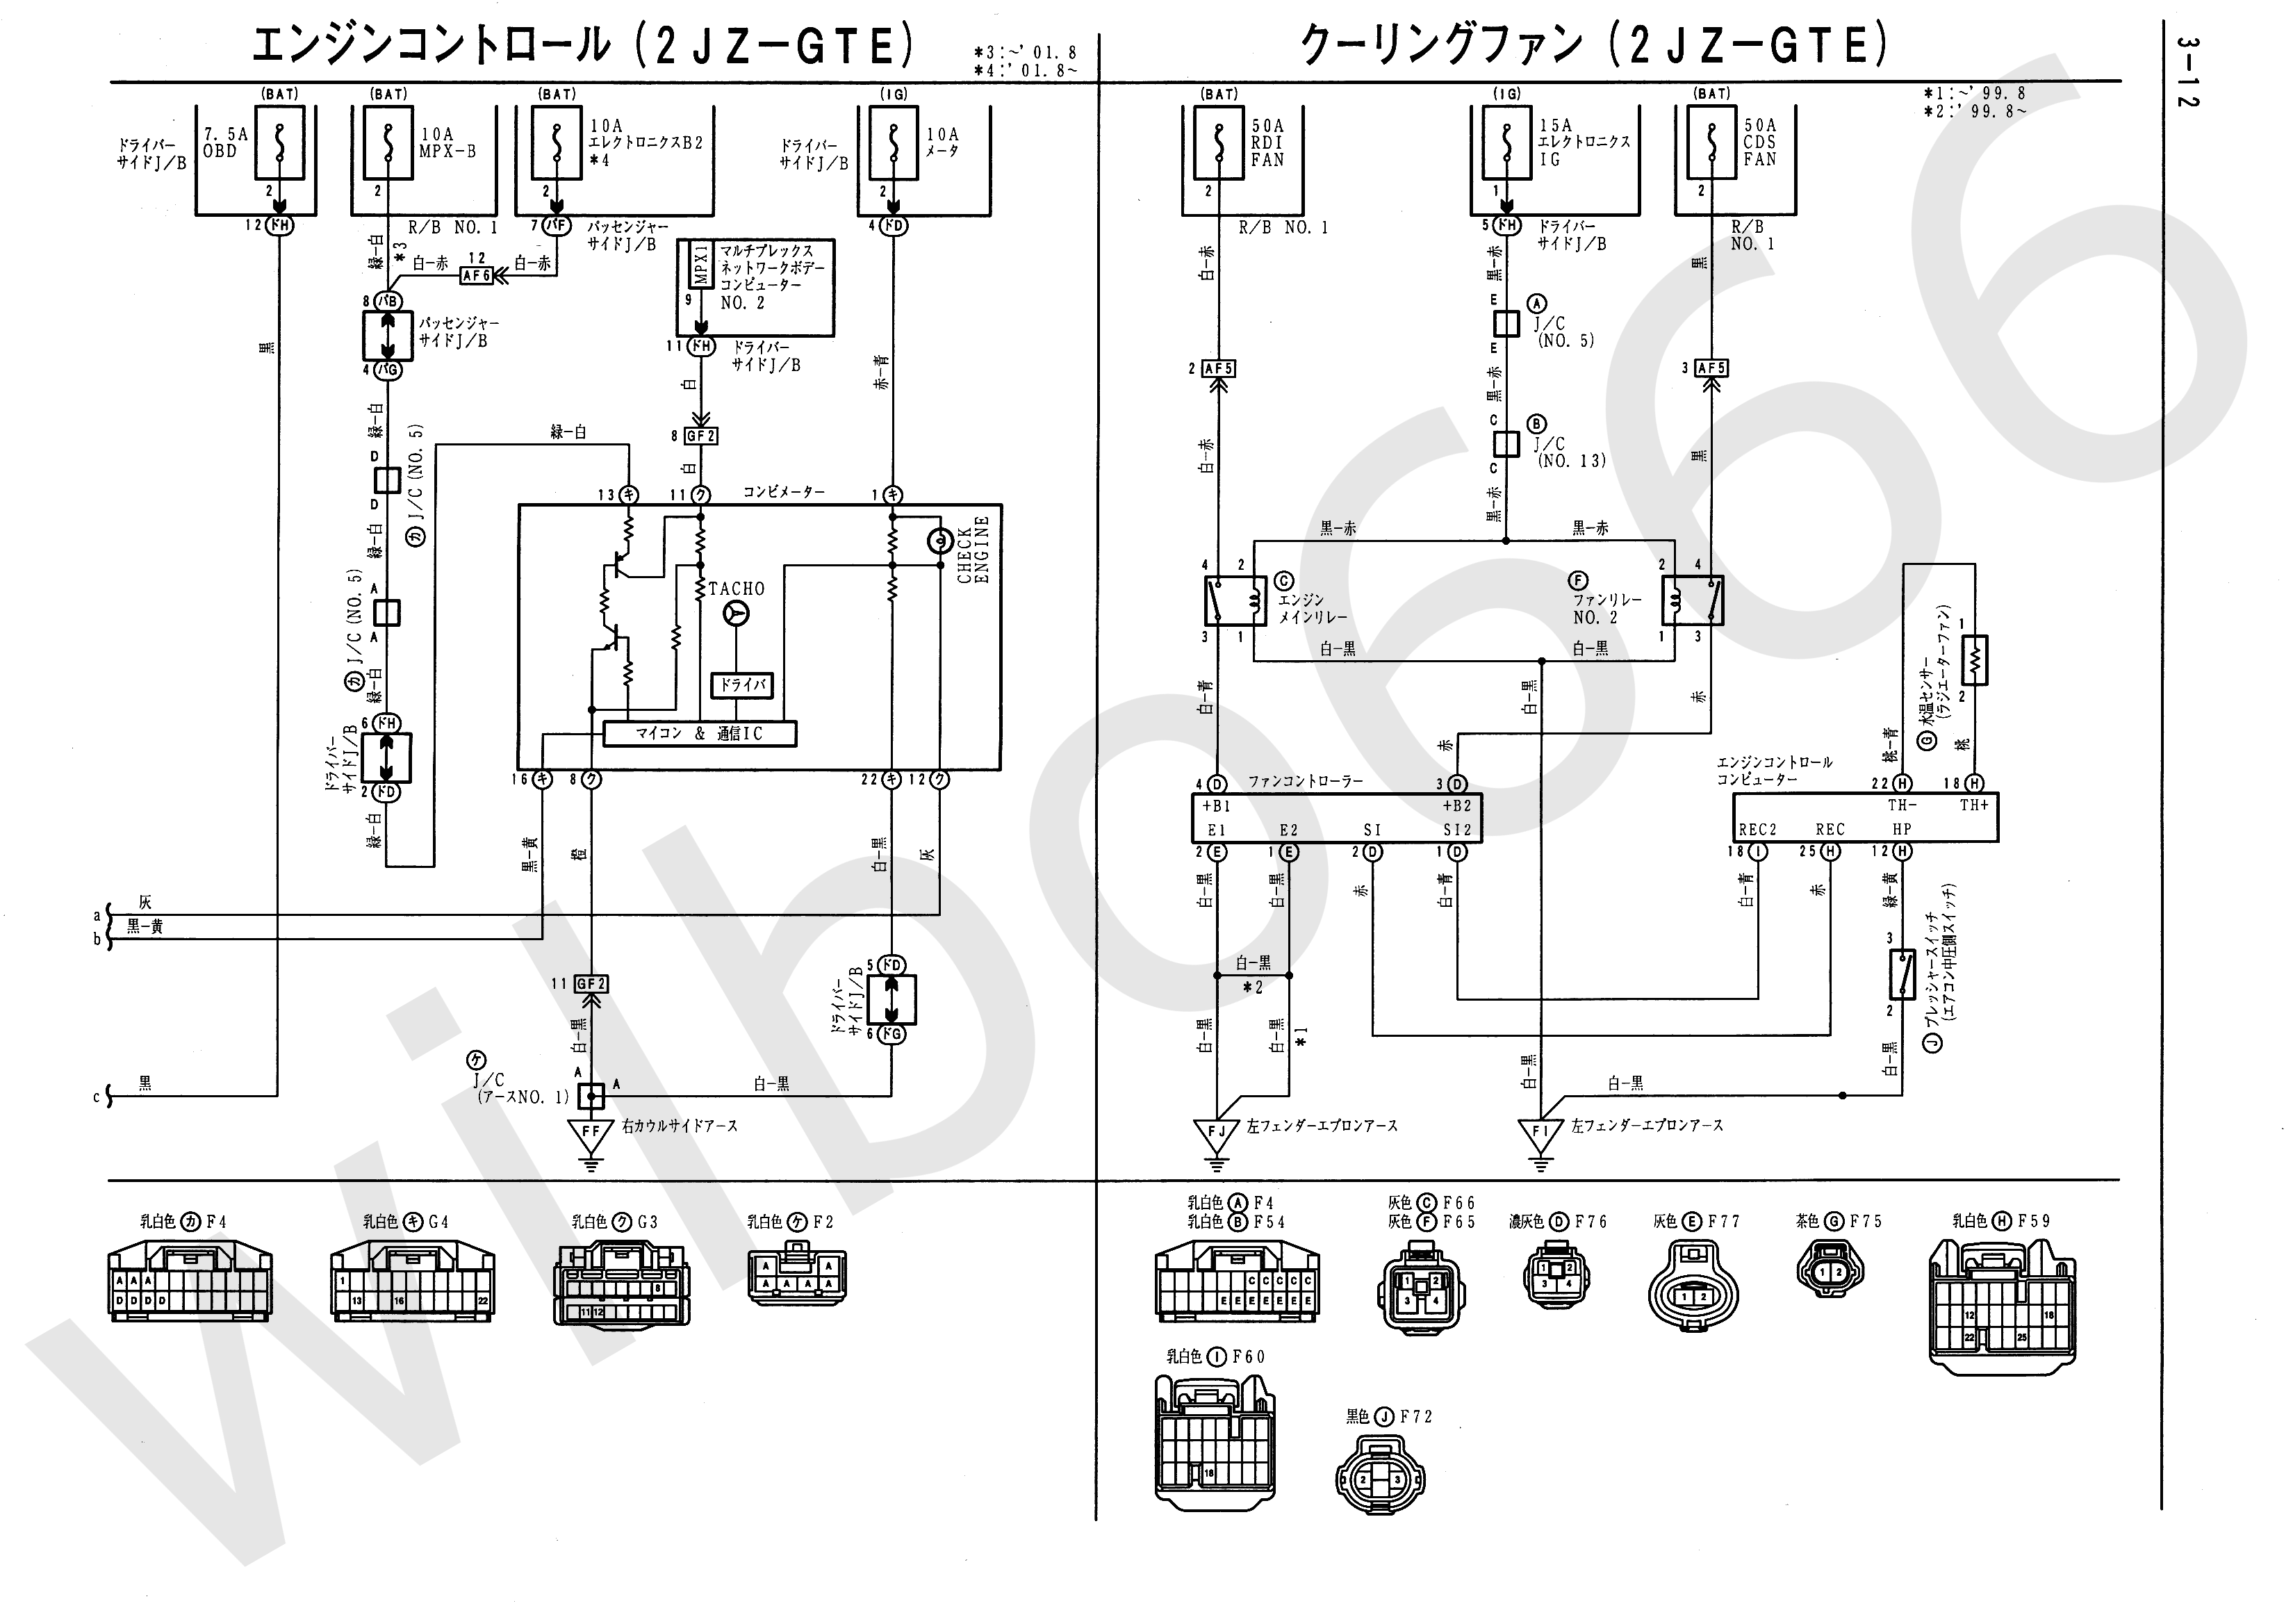 JZS161 Electrical Wiring Diagram 6748505 3 12 wilbo666 2jz gte vvti jzs161 aristo engine wiring is300 2jzgte wiring harness at gsmx.co